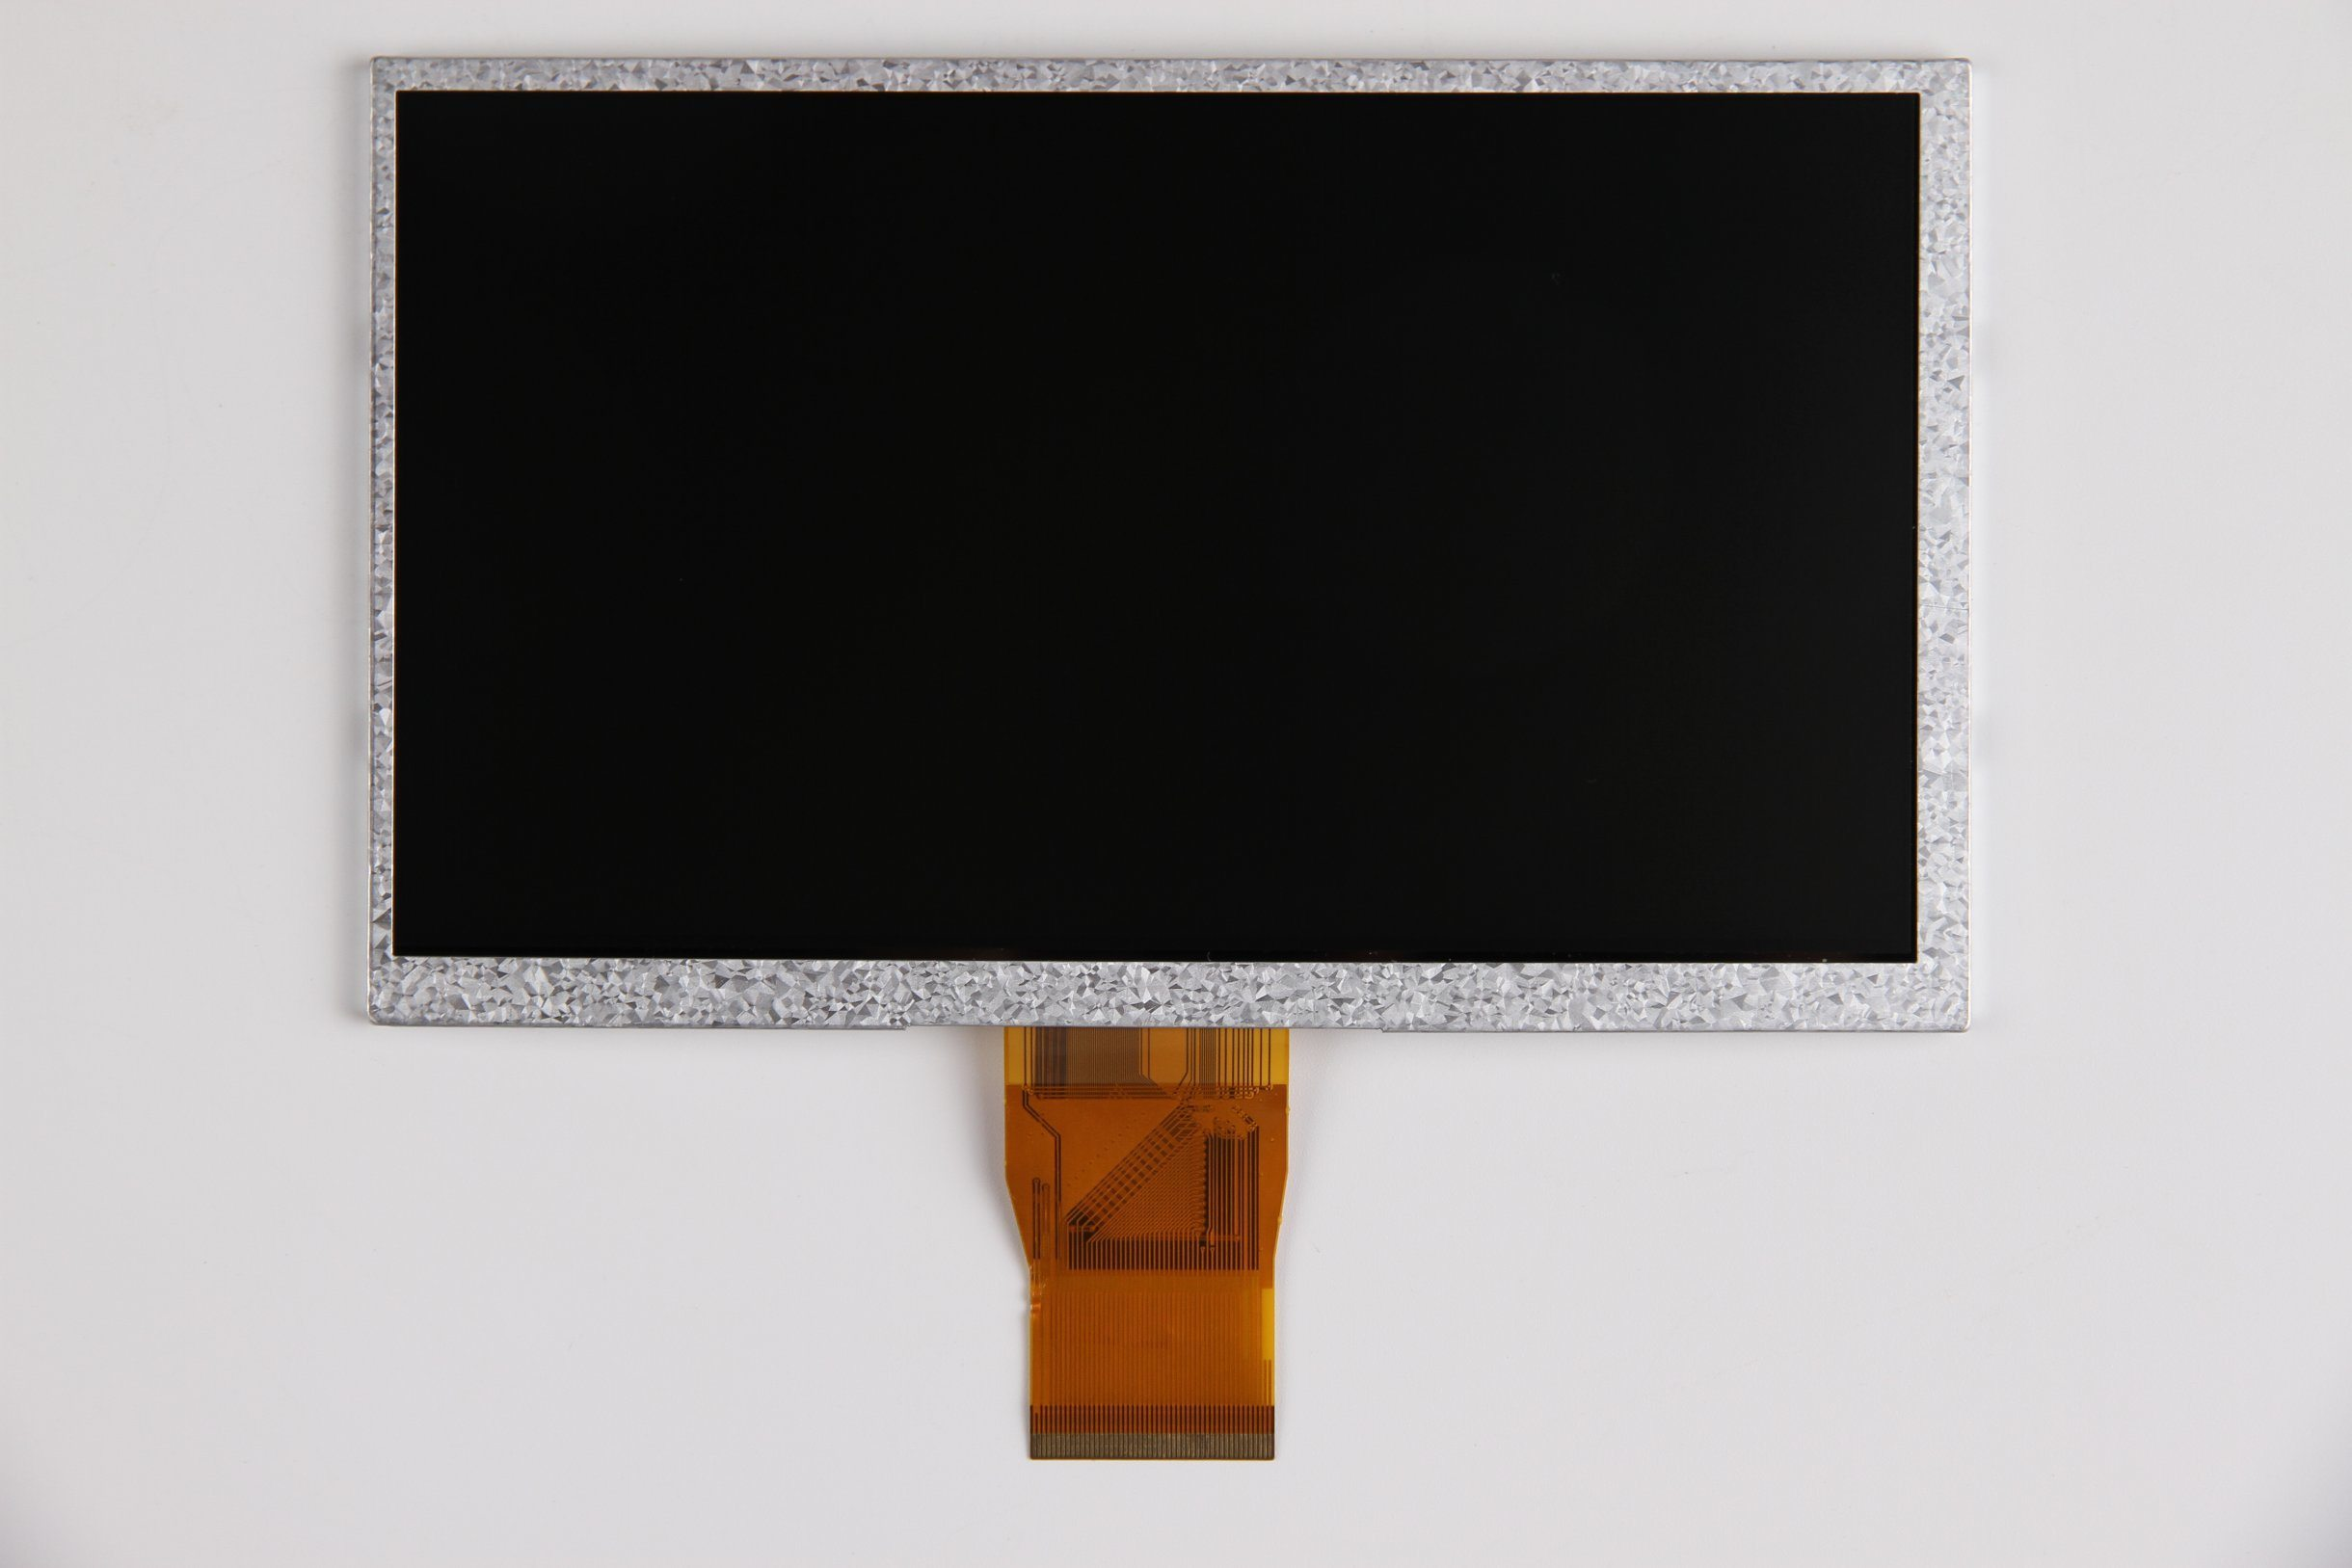 Hot Sale 7.0 in⪞ H High Resolutions Colorful TFT LCD Display